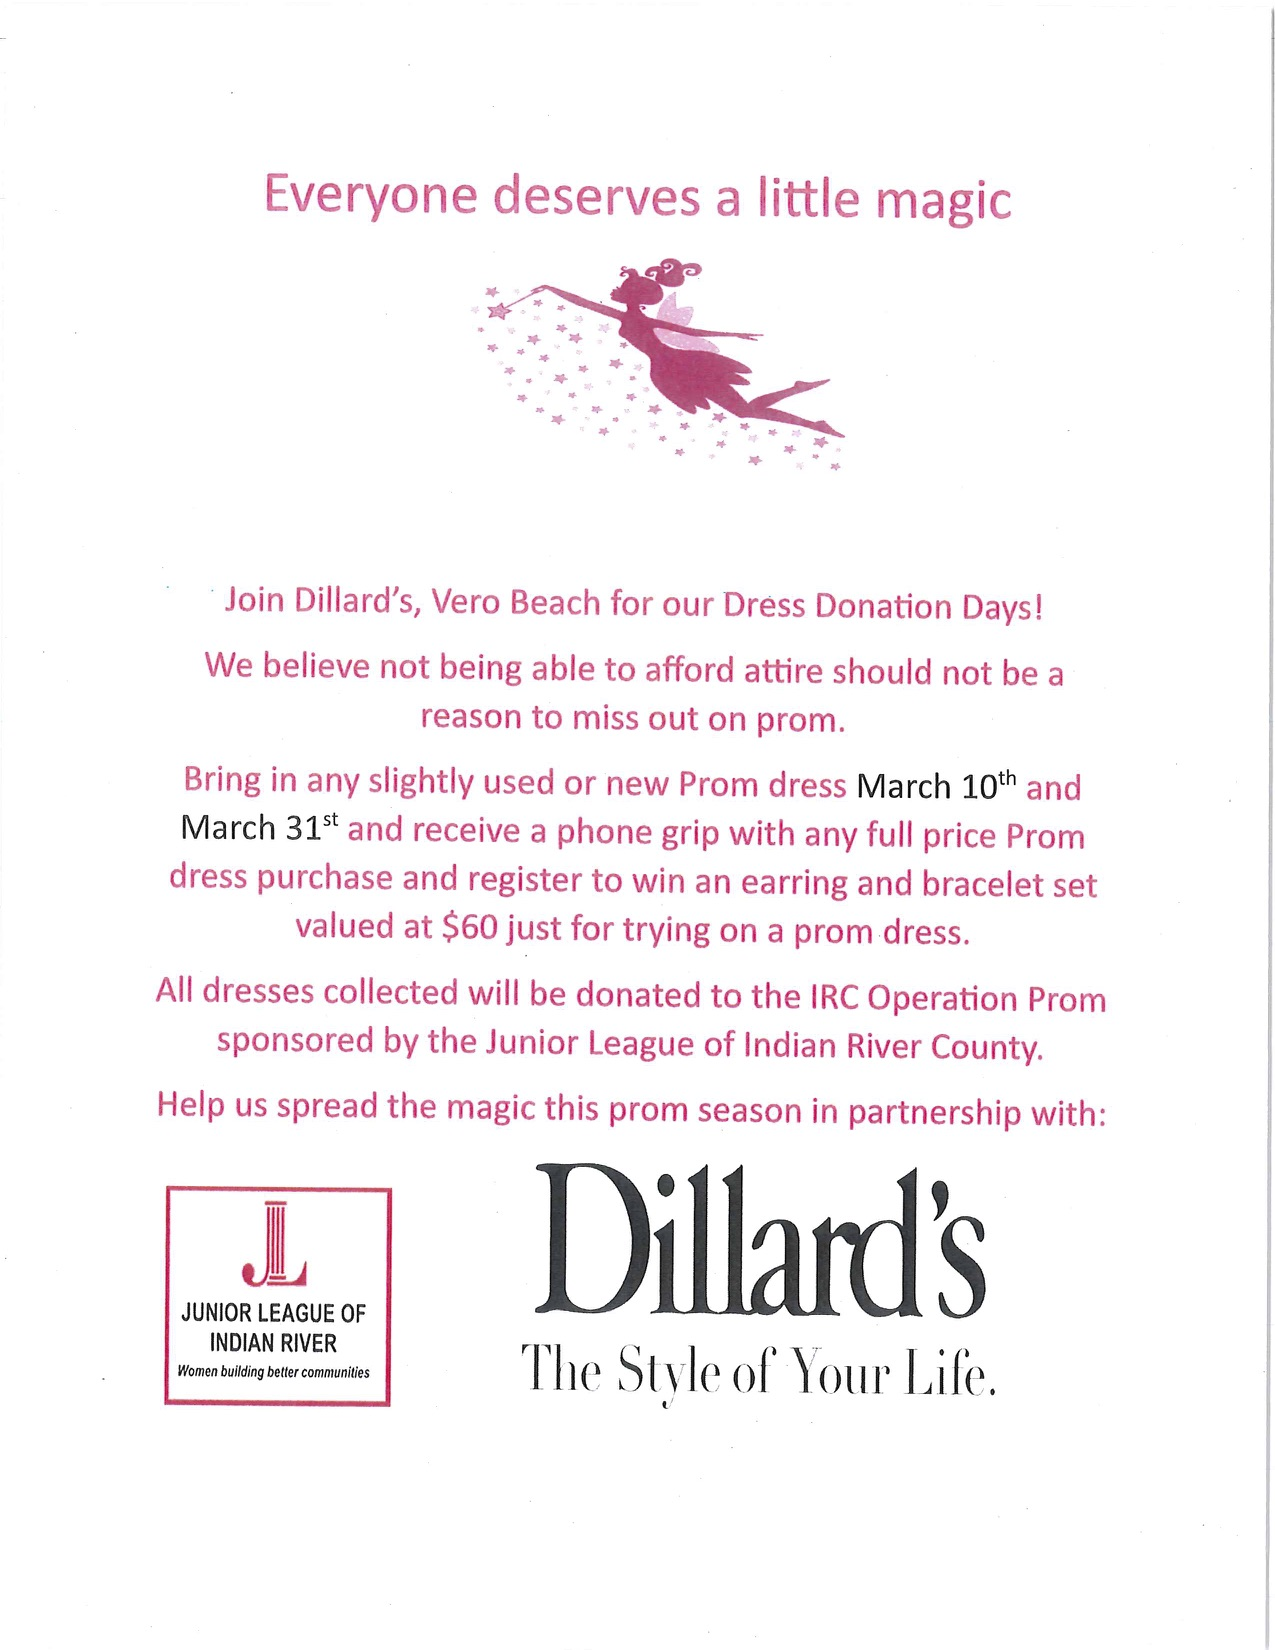 Dillards Prom Dress Donation Days